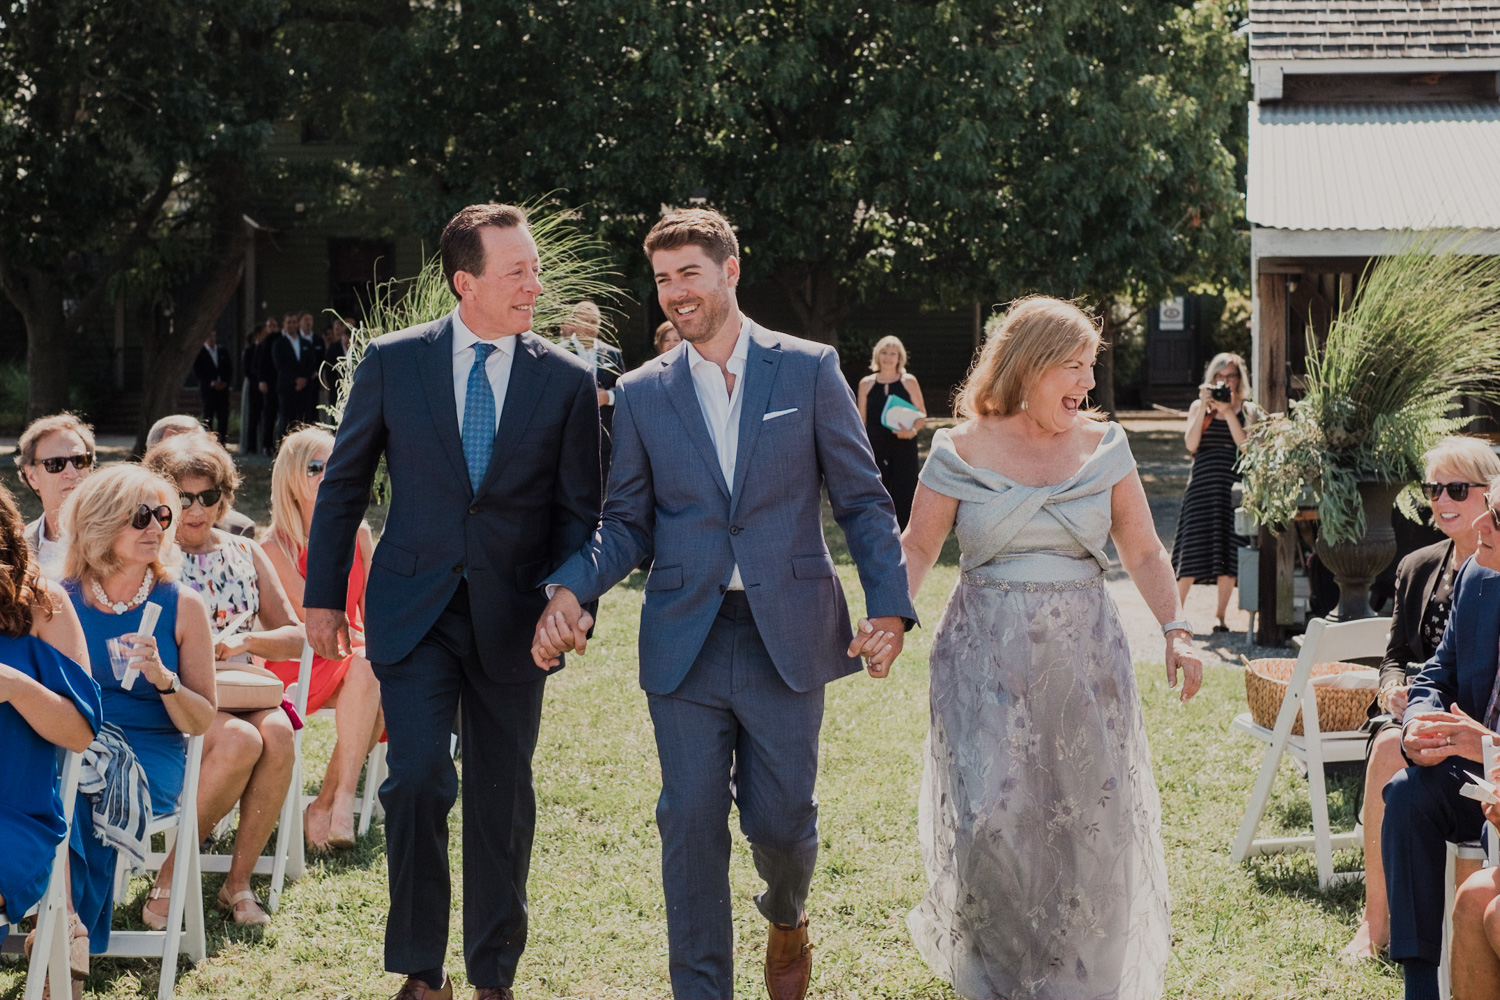 groom is escorted by both of his parents down the aisle at the start of wedding